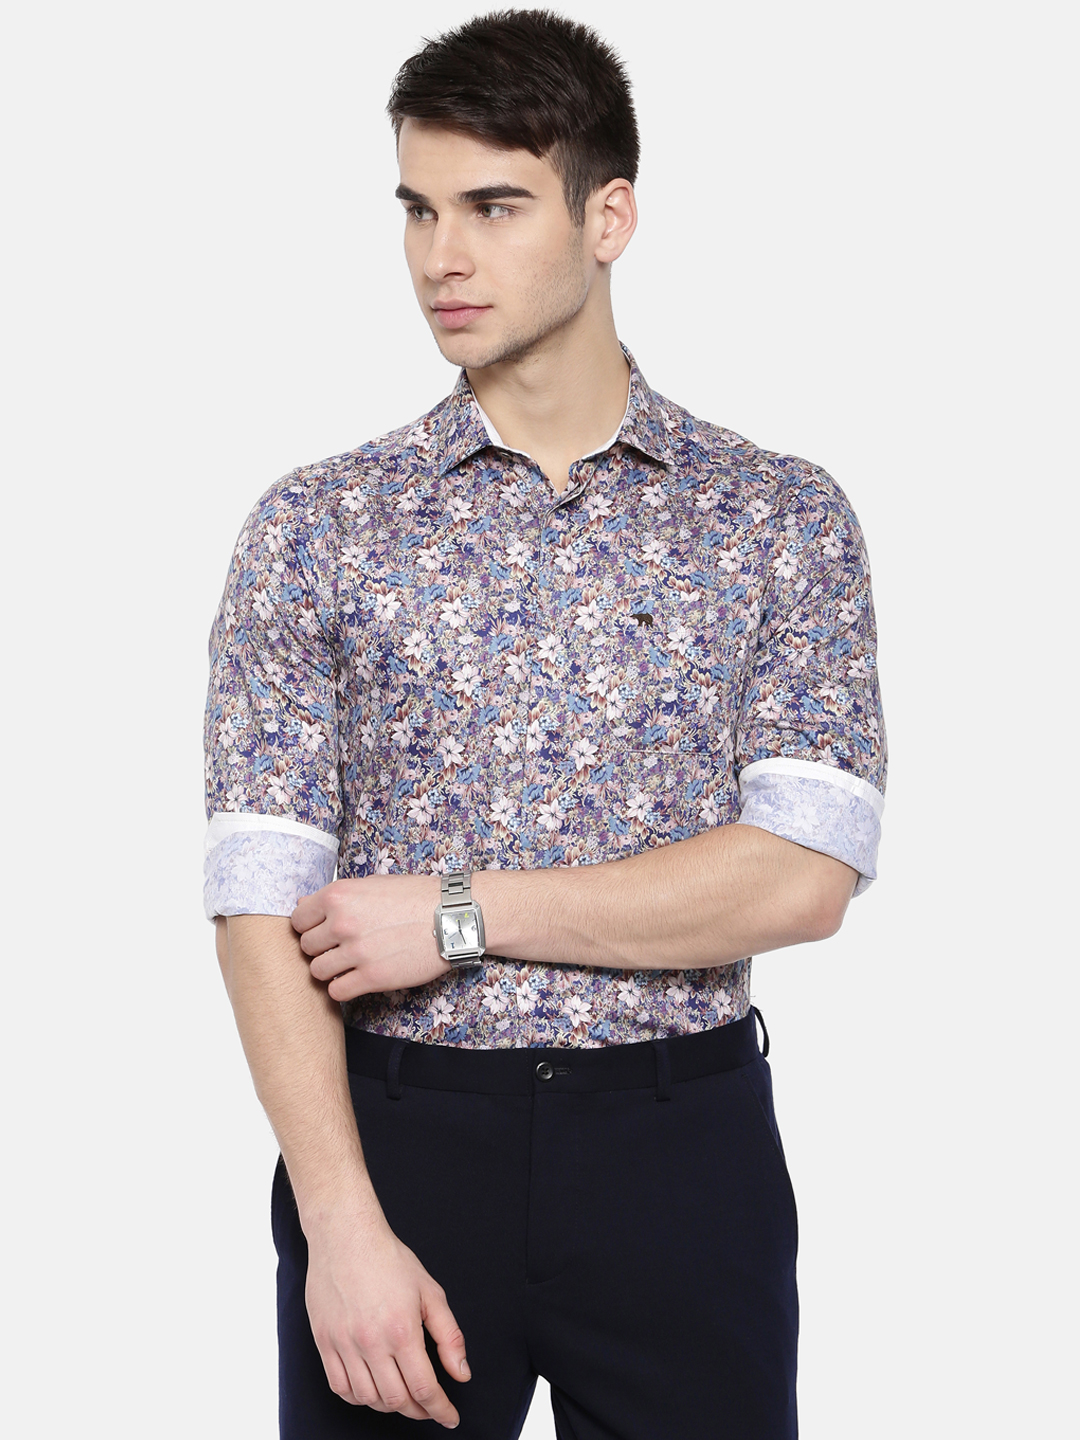 The Bear House | TBH CLASSIC FLORAL FORMAL SHIRT WITH SIDE PANELS.